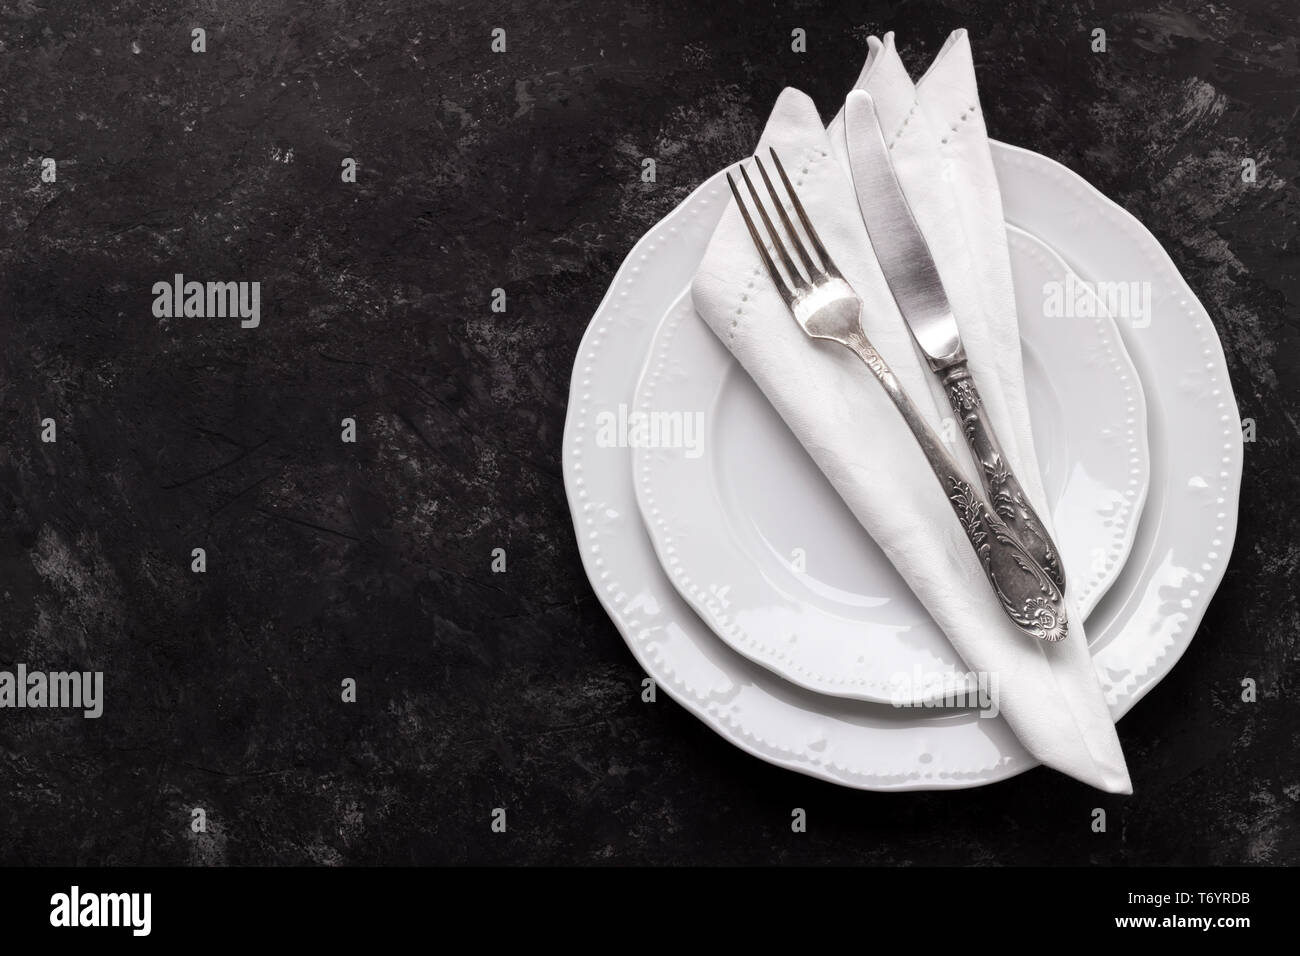 White plates and vintage cutlery - Stock Image